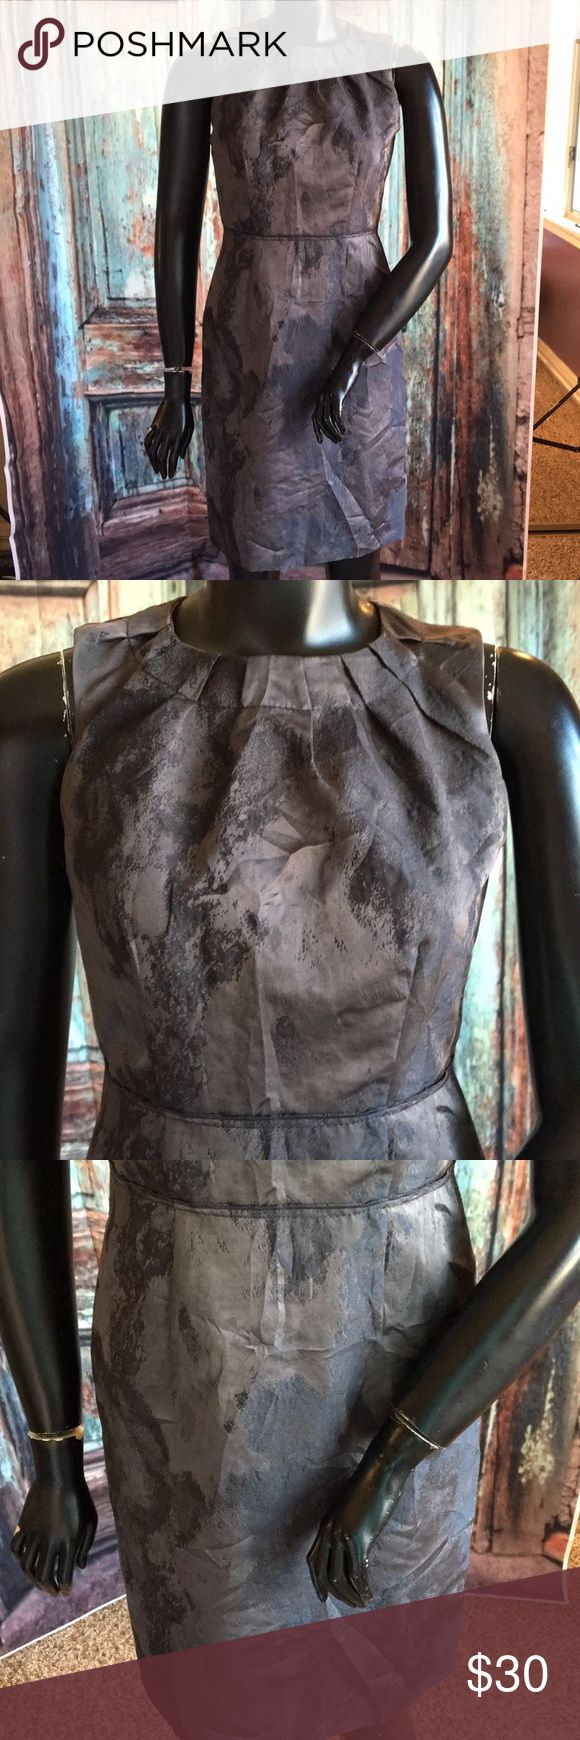 LOFT Career Grey Dress Career style dress from LOFT. Size 2. Grey colored pattern. Scoop neck. Super cute. In good condition. LOFT Dresses